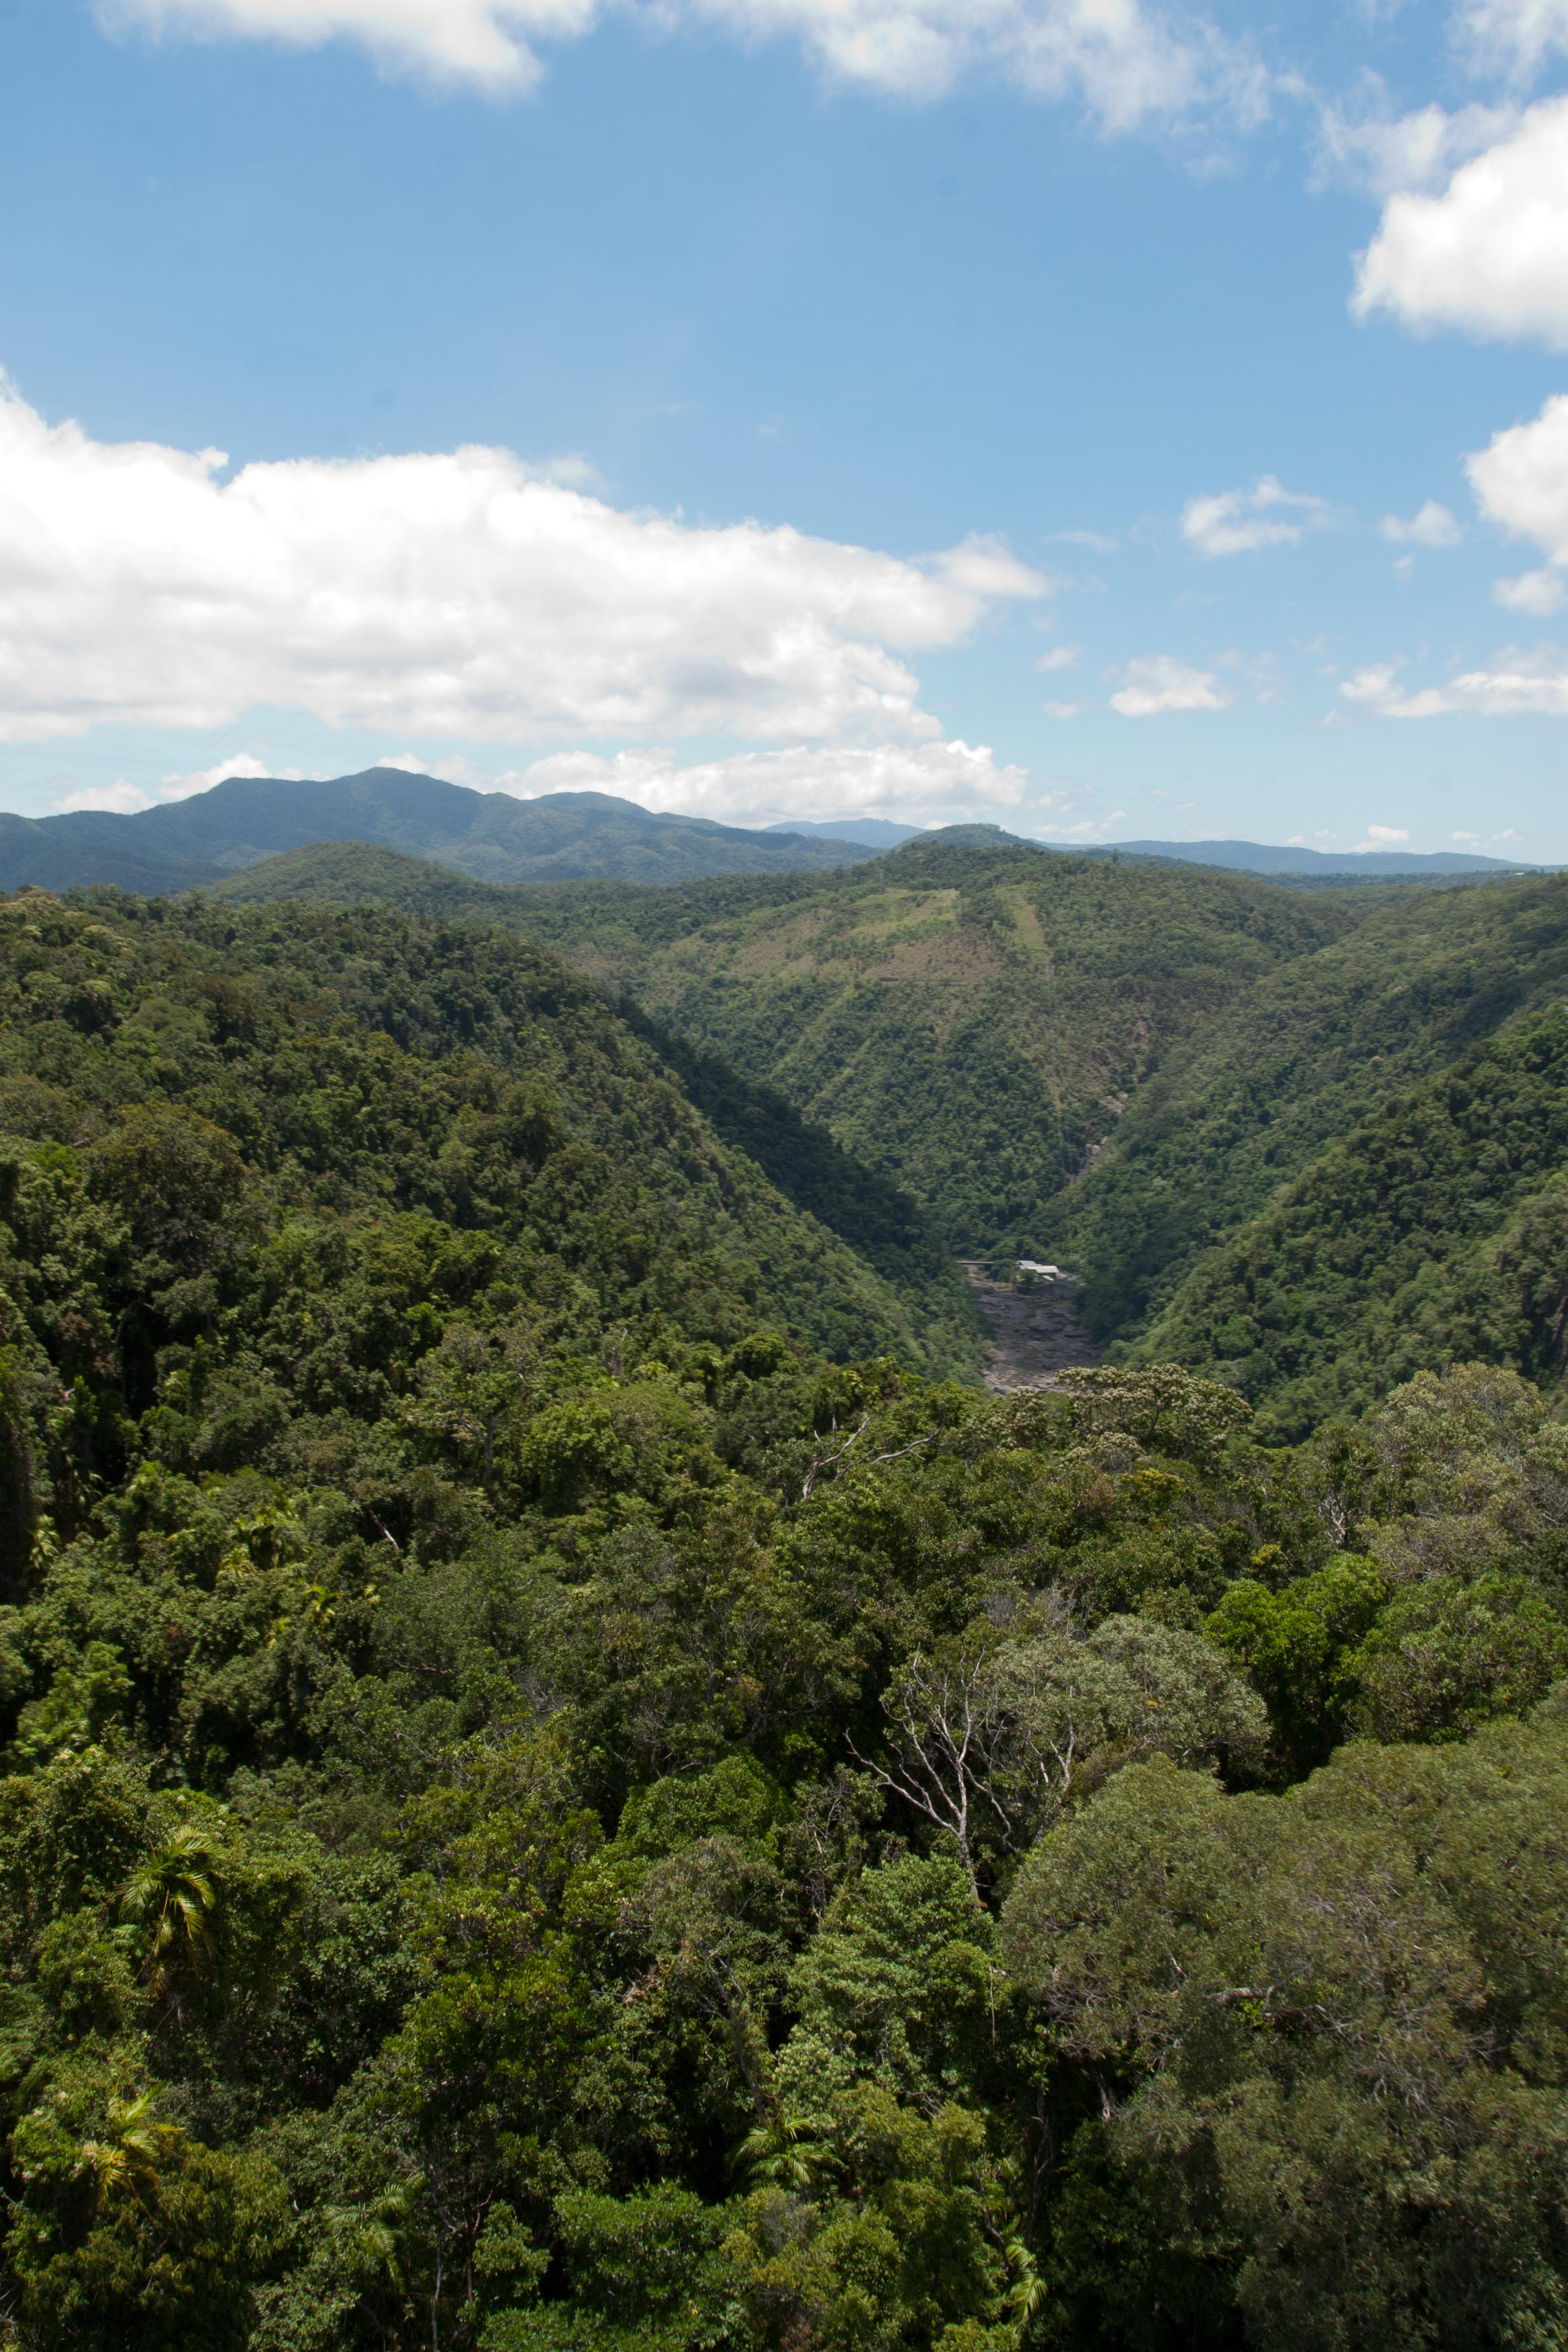 Forest cover on the Blue Mountains outside Sydney, Australia.